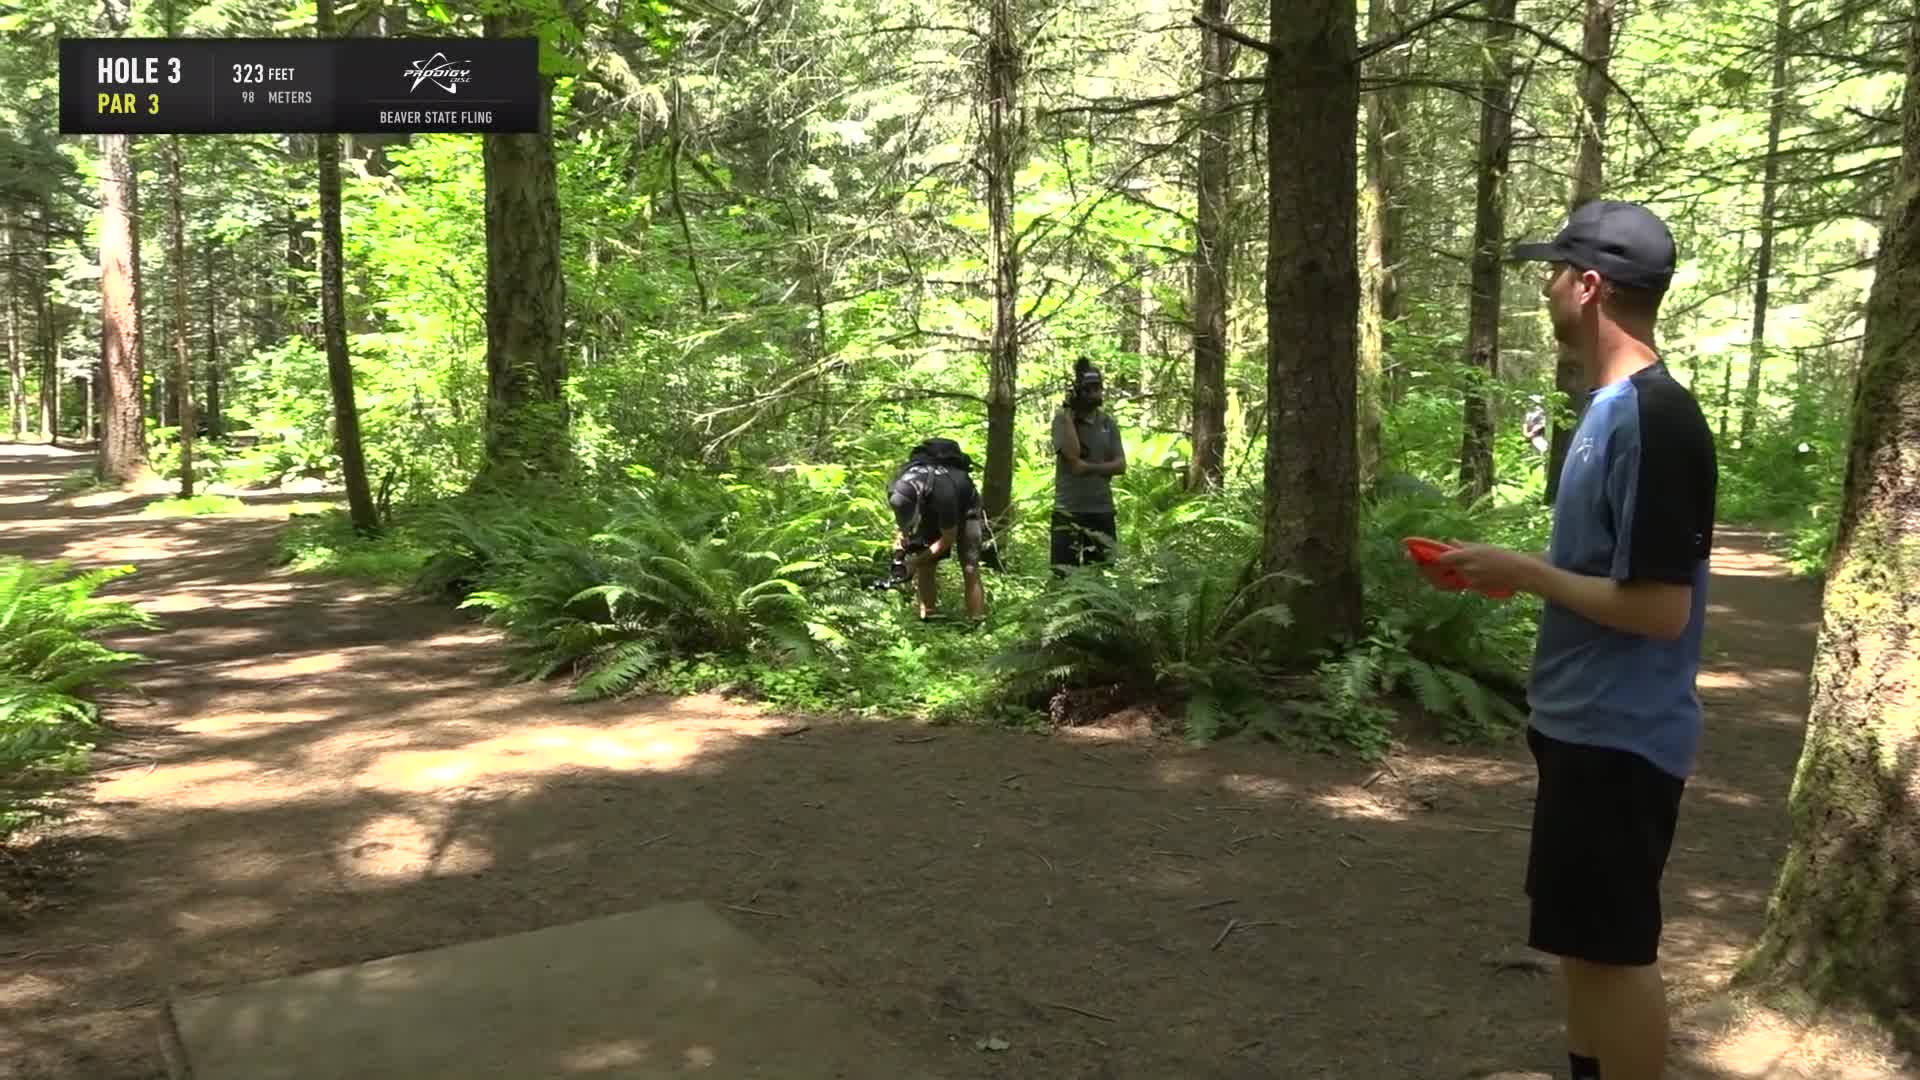 ace, bsf, dela, delaveaga, dgpt, dgwt, disc, disc golf, frolf, hole in one, masters cup, mcbeast, milo, nate sexton, nt, paul mcbeth, pdga, simon lizotte, tournament, worlds, 2019 Beaver State Fling - Final Round, Part 1- Seppo Paju hole 3 roller GIFs